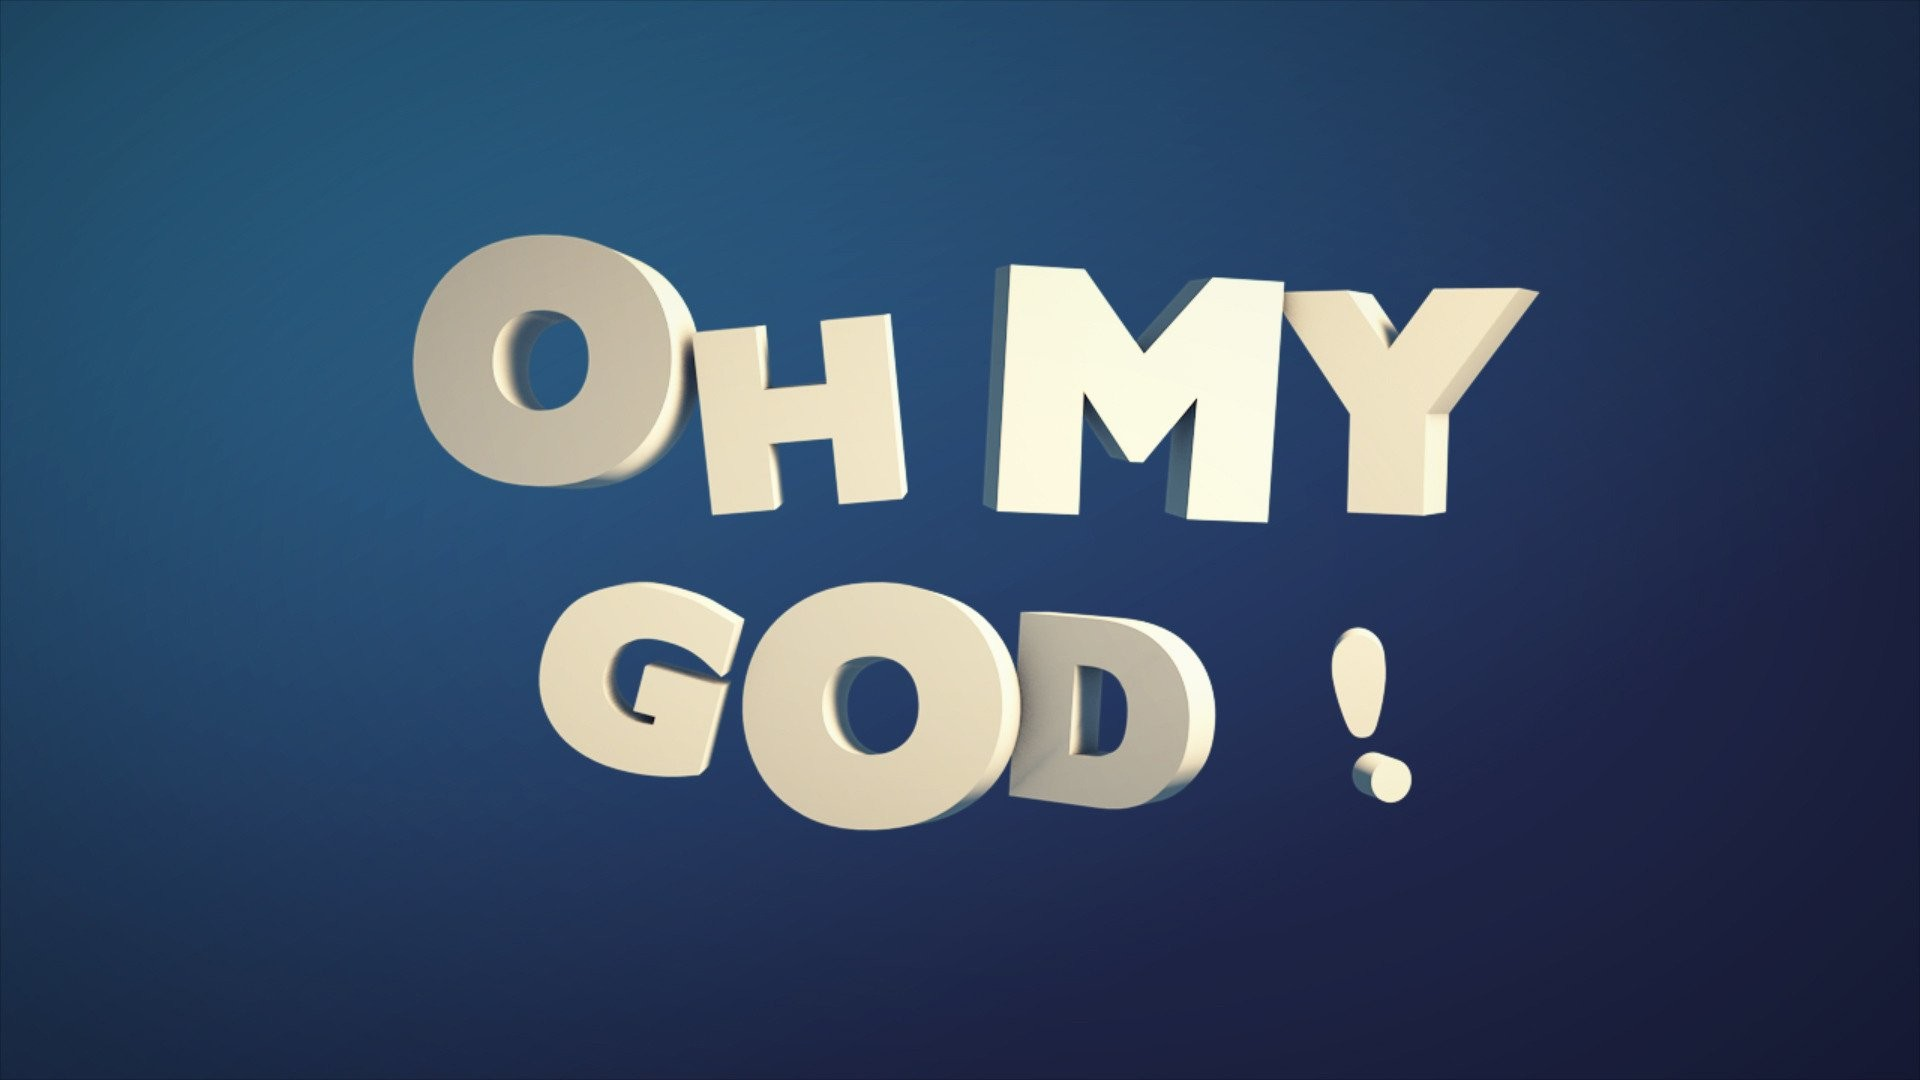 Omg oh my god full movie hd 1080p download